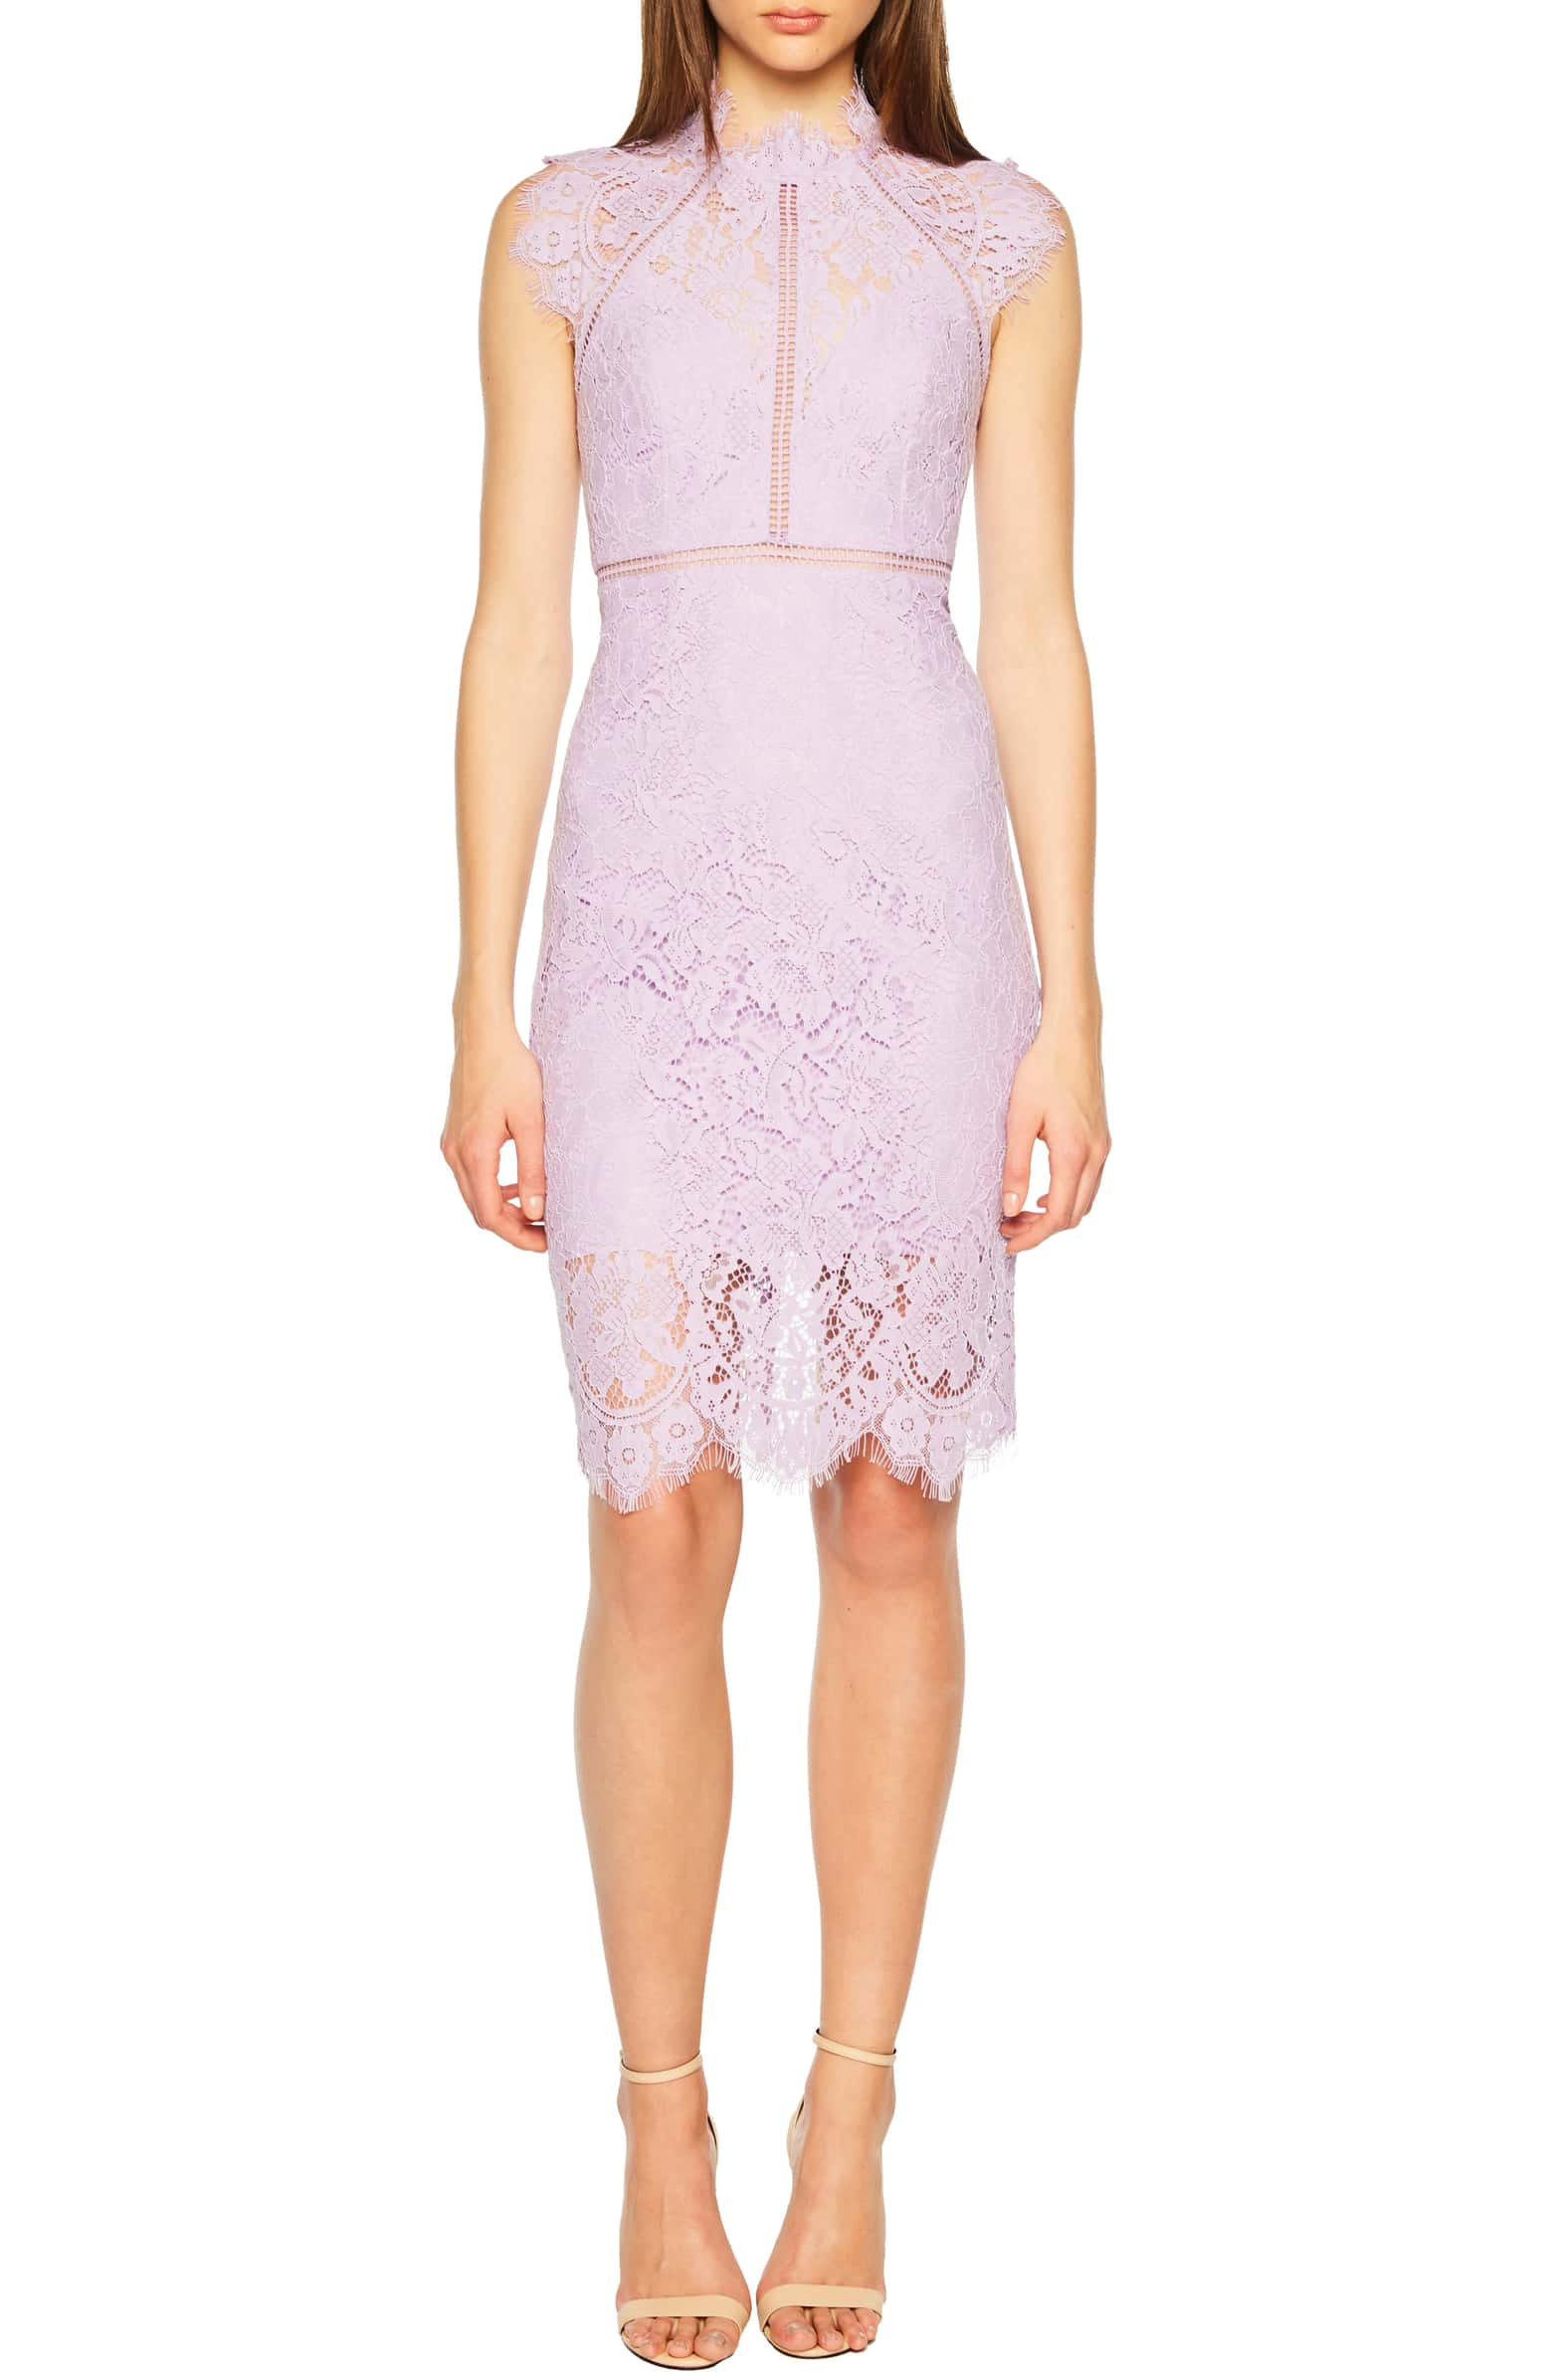 lace sheath dress.jpg